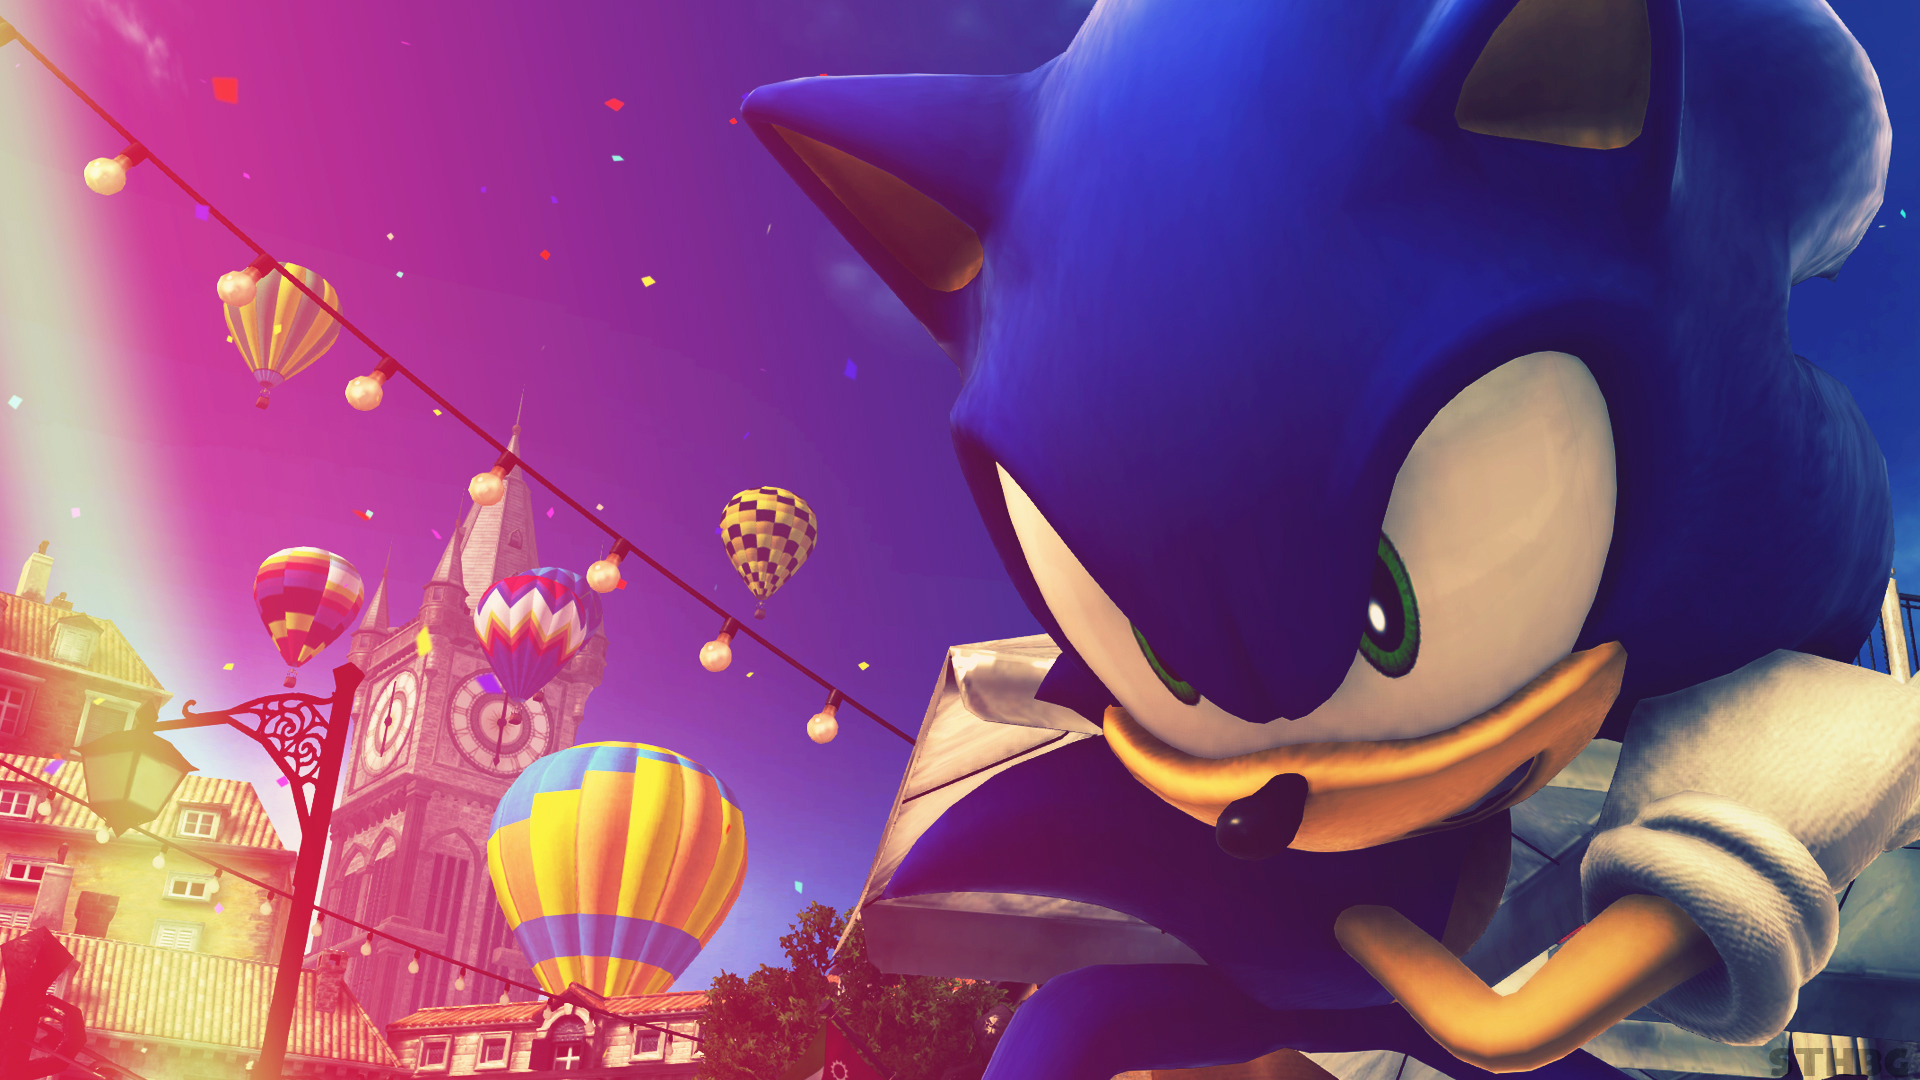 Free Download Sonic The Hedgehog Wallpaper By Sonicthehedgehogbg